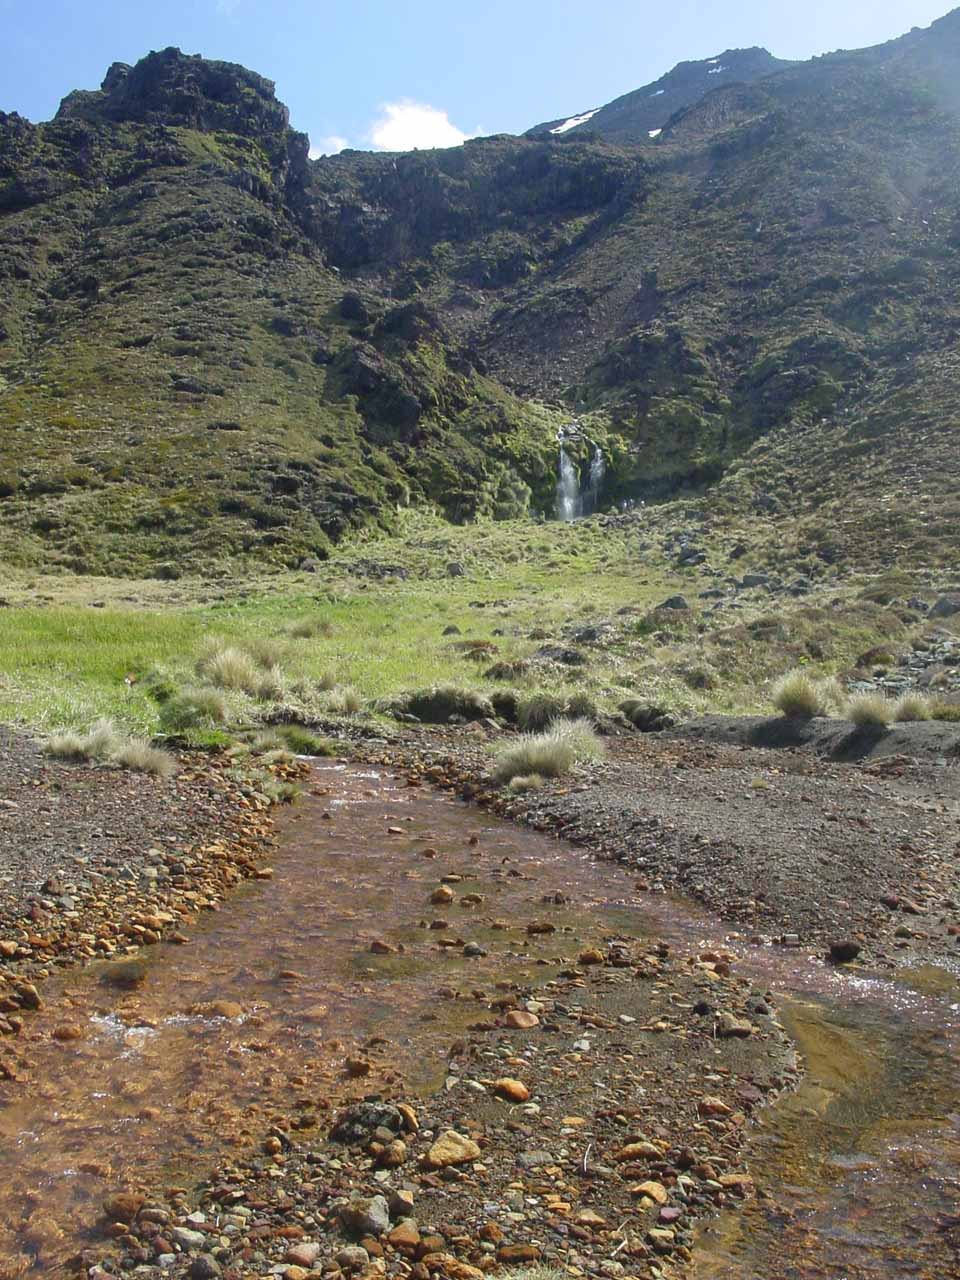 View of Soda Springs from the Tongariro Crossing with a stream passing before it